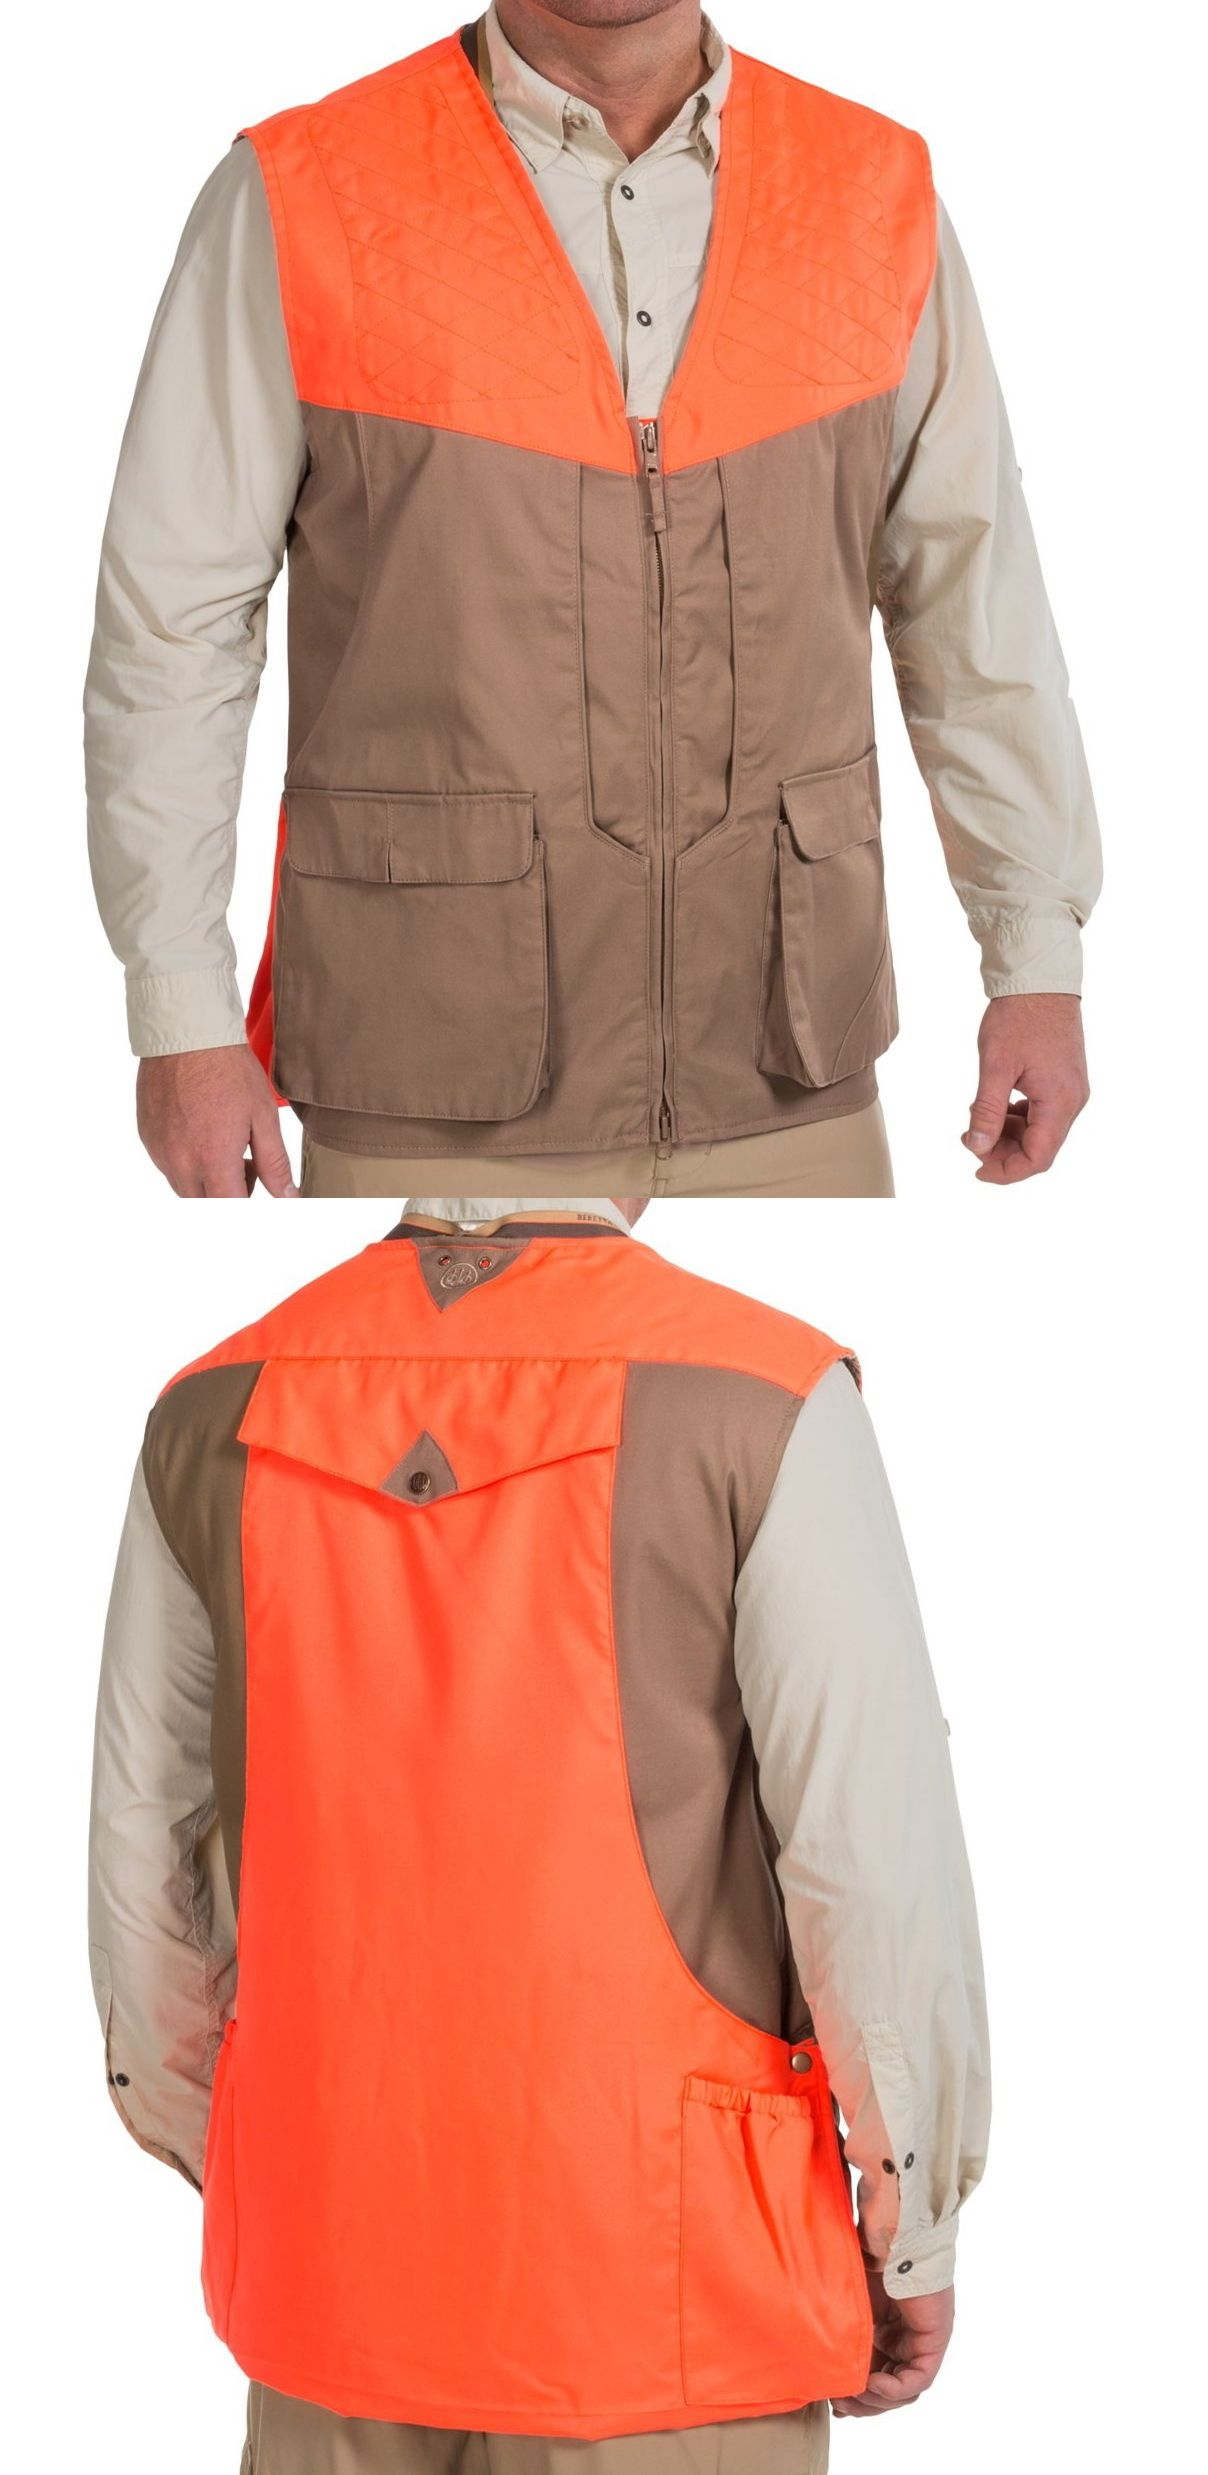 Vests 178080: Beretta Front-Loading Cotton Upland Shooting Vest - 2Xl - Water Repellent -> BUY IT NOW ONLY: $64.95 on eBay!